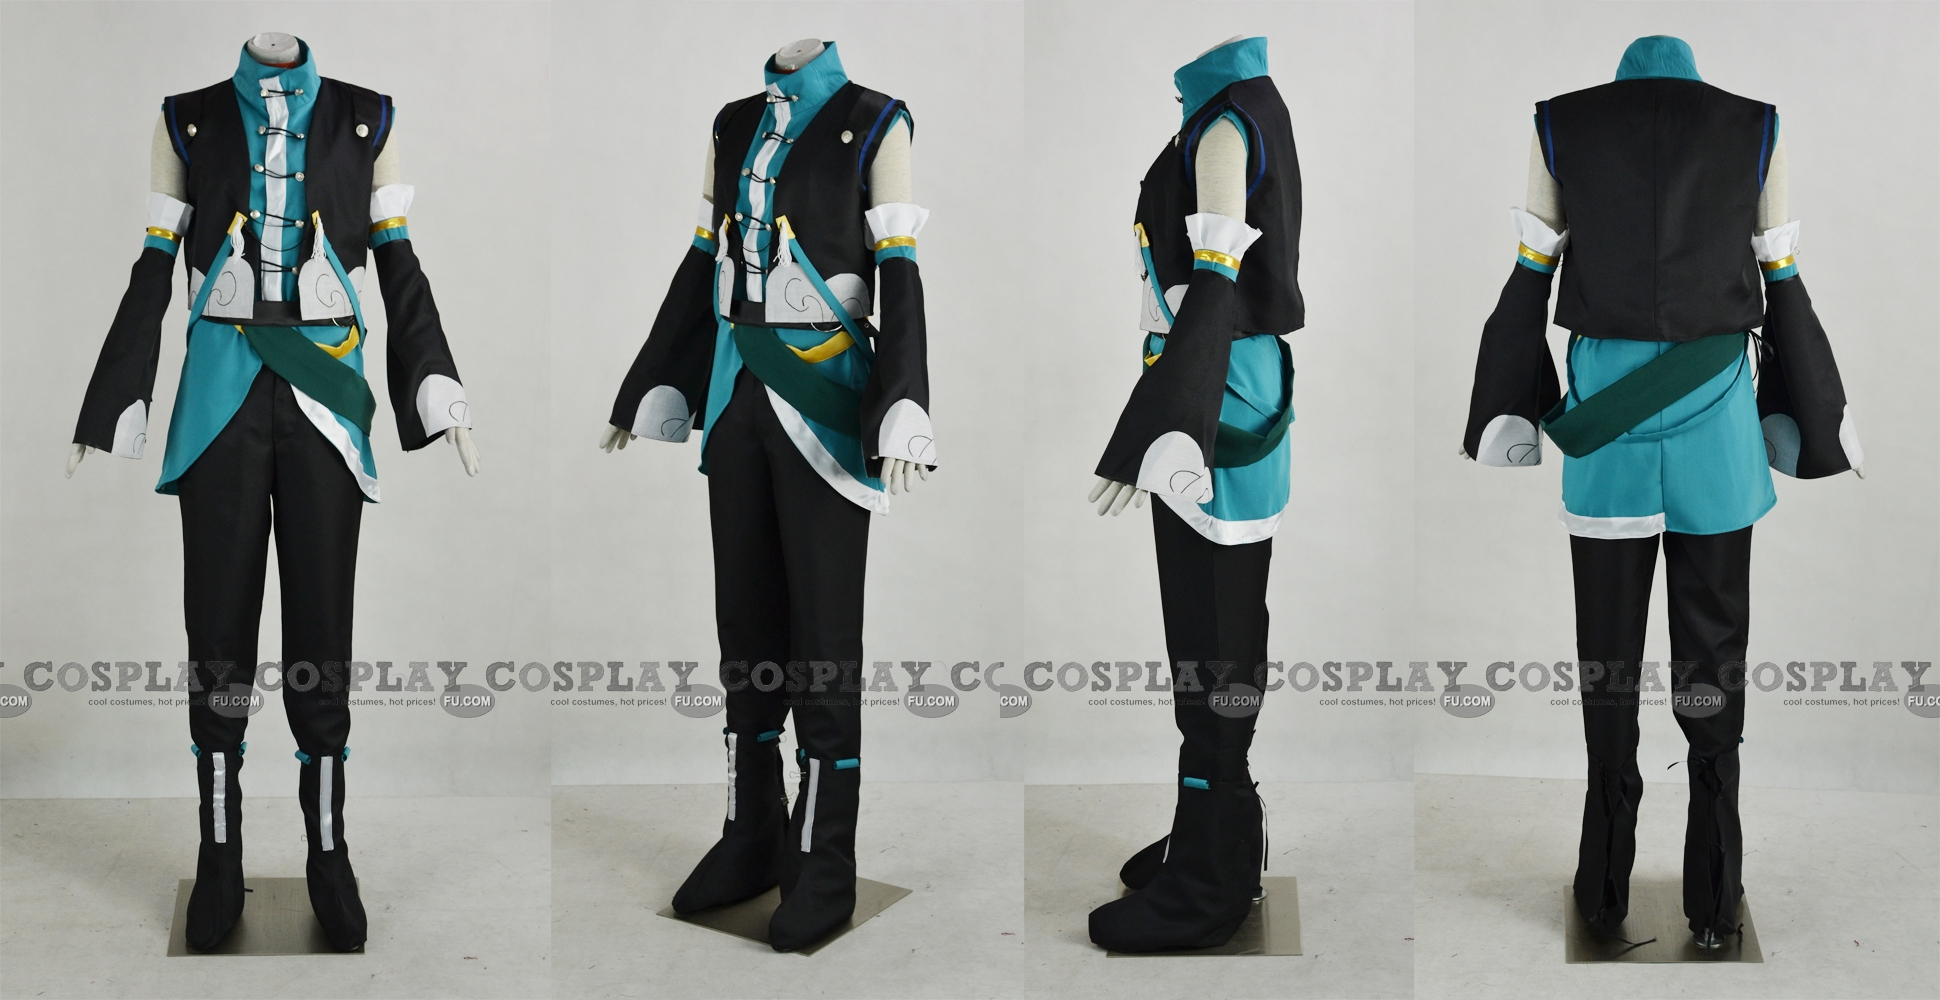 Longya Cosplay Costume from China Project